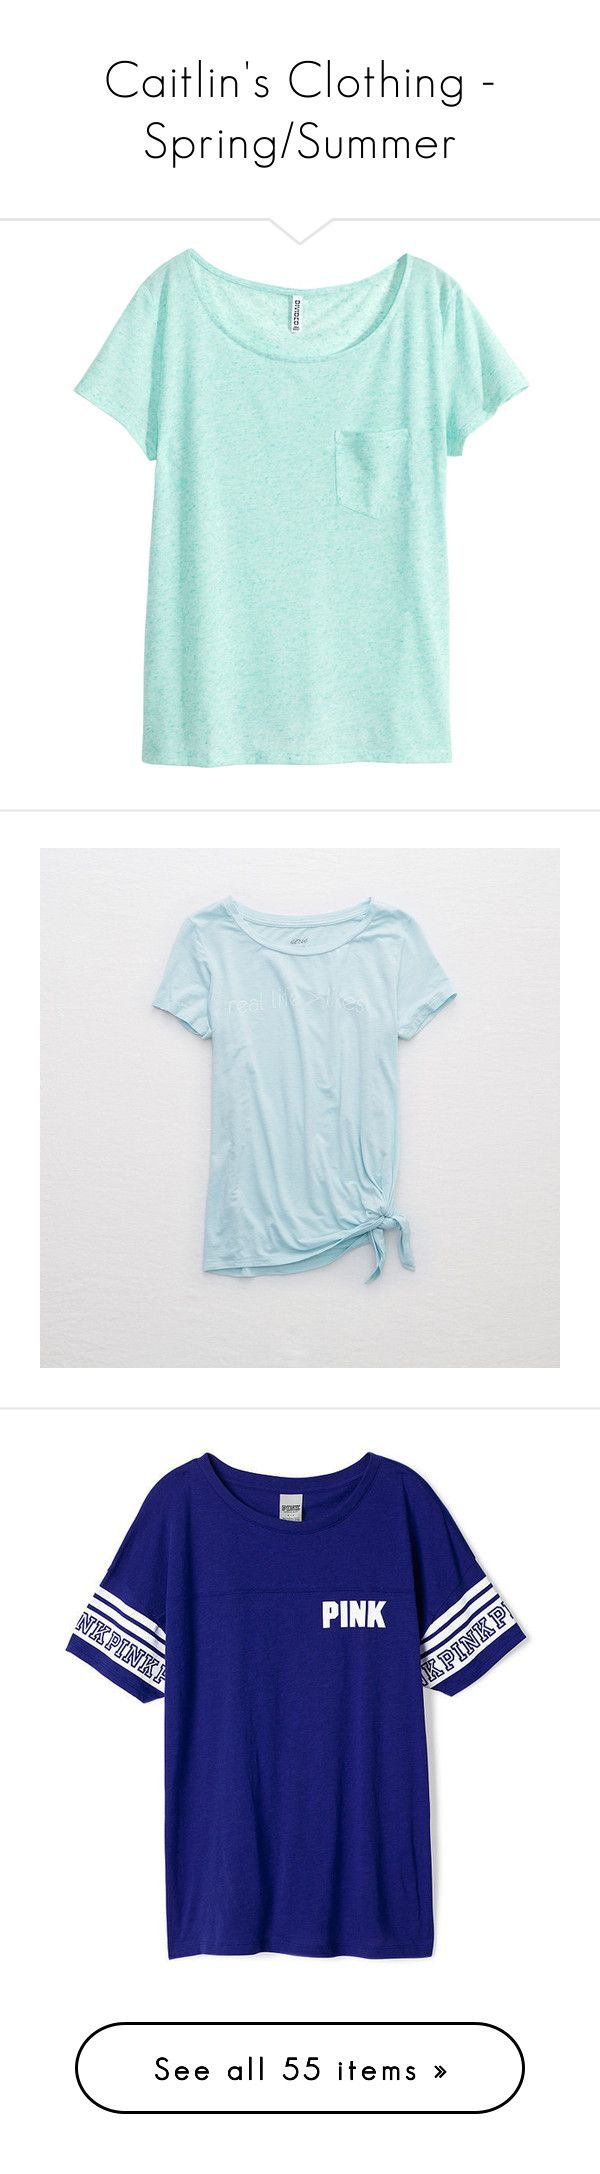 """""""Caitlin's Clothing - Spring/Summer"""" by babybutter-stories ❤ liked on Polyvore featuring thecallowayfamily, tops, t-shirts, shirts, blusas, mint green, short sleeve shirts, mint shirts, mint green t shirt and t shirt"""